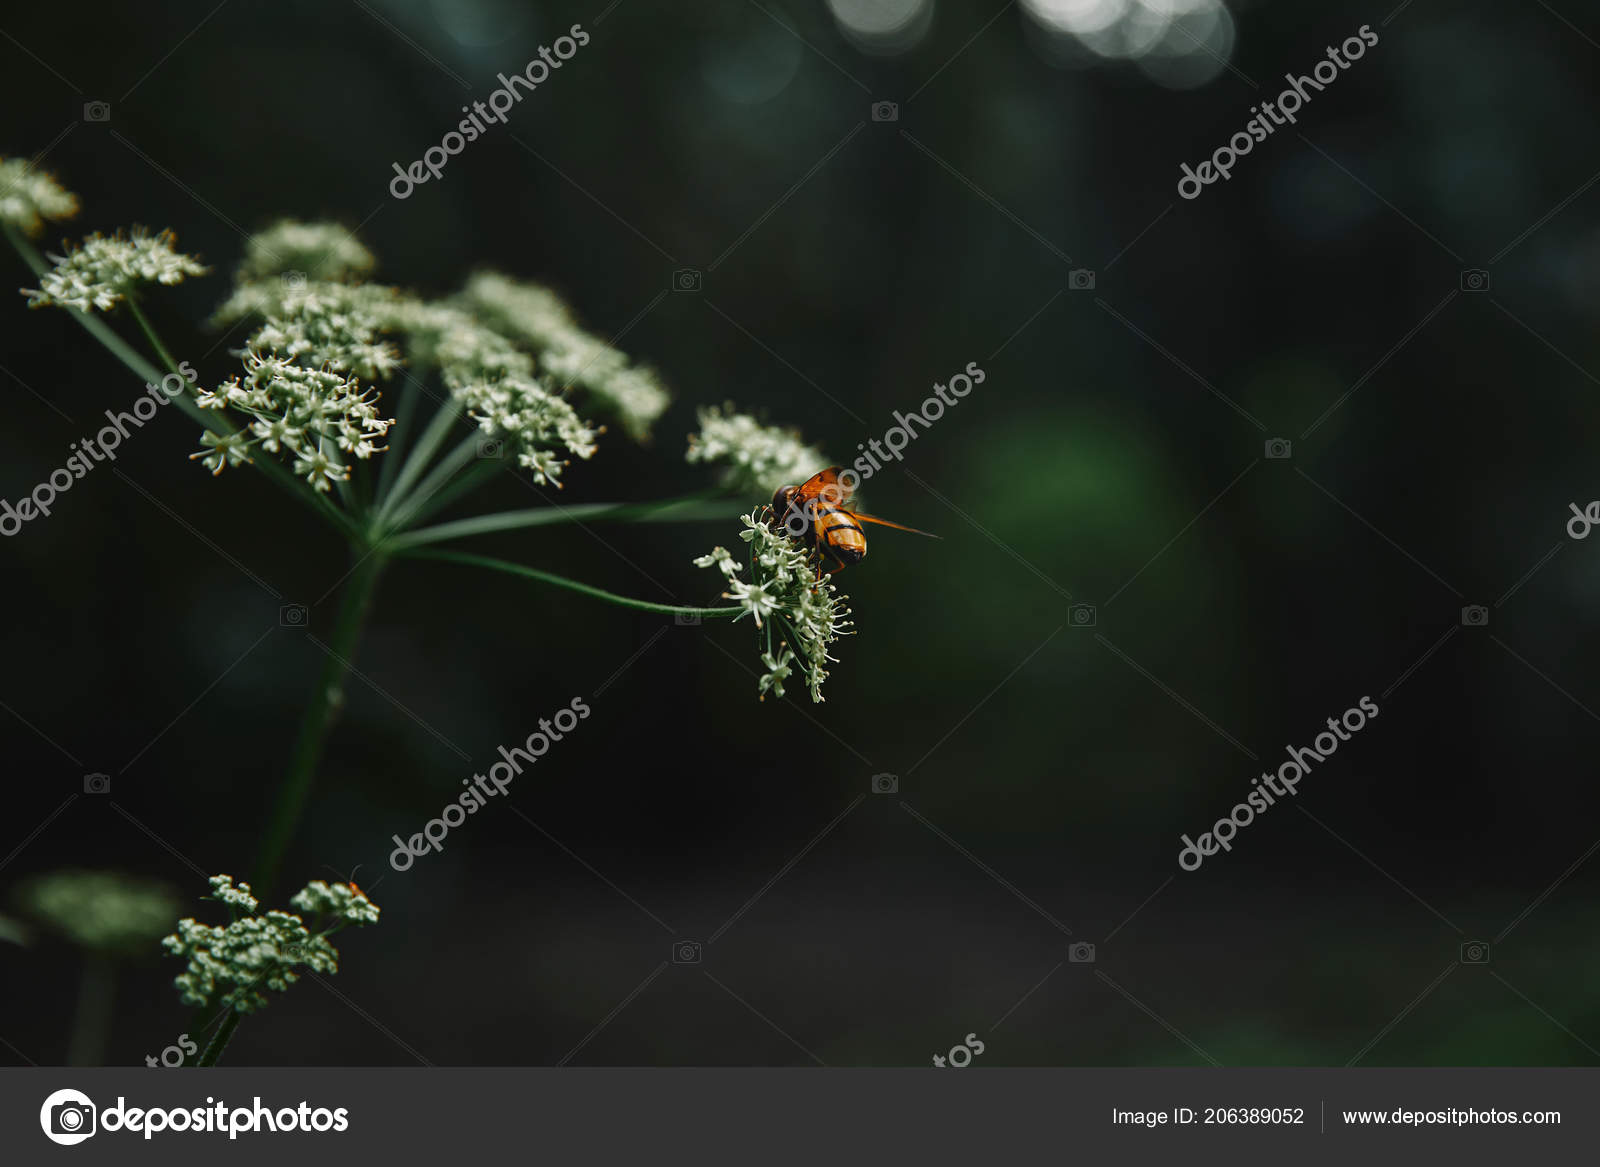 Selective Focus Bee Cow Parsley Flowers Blurred Background Stock Use In Macro Photography For Dummies Photo